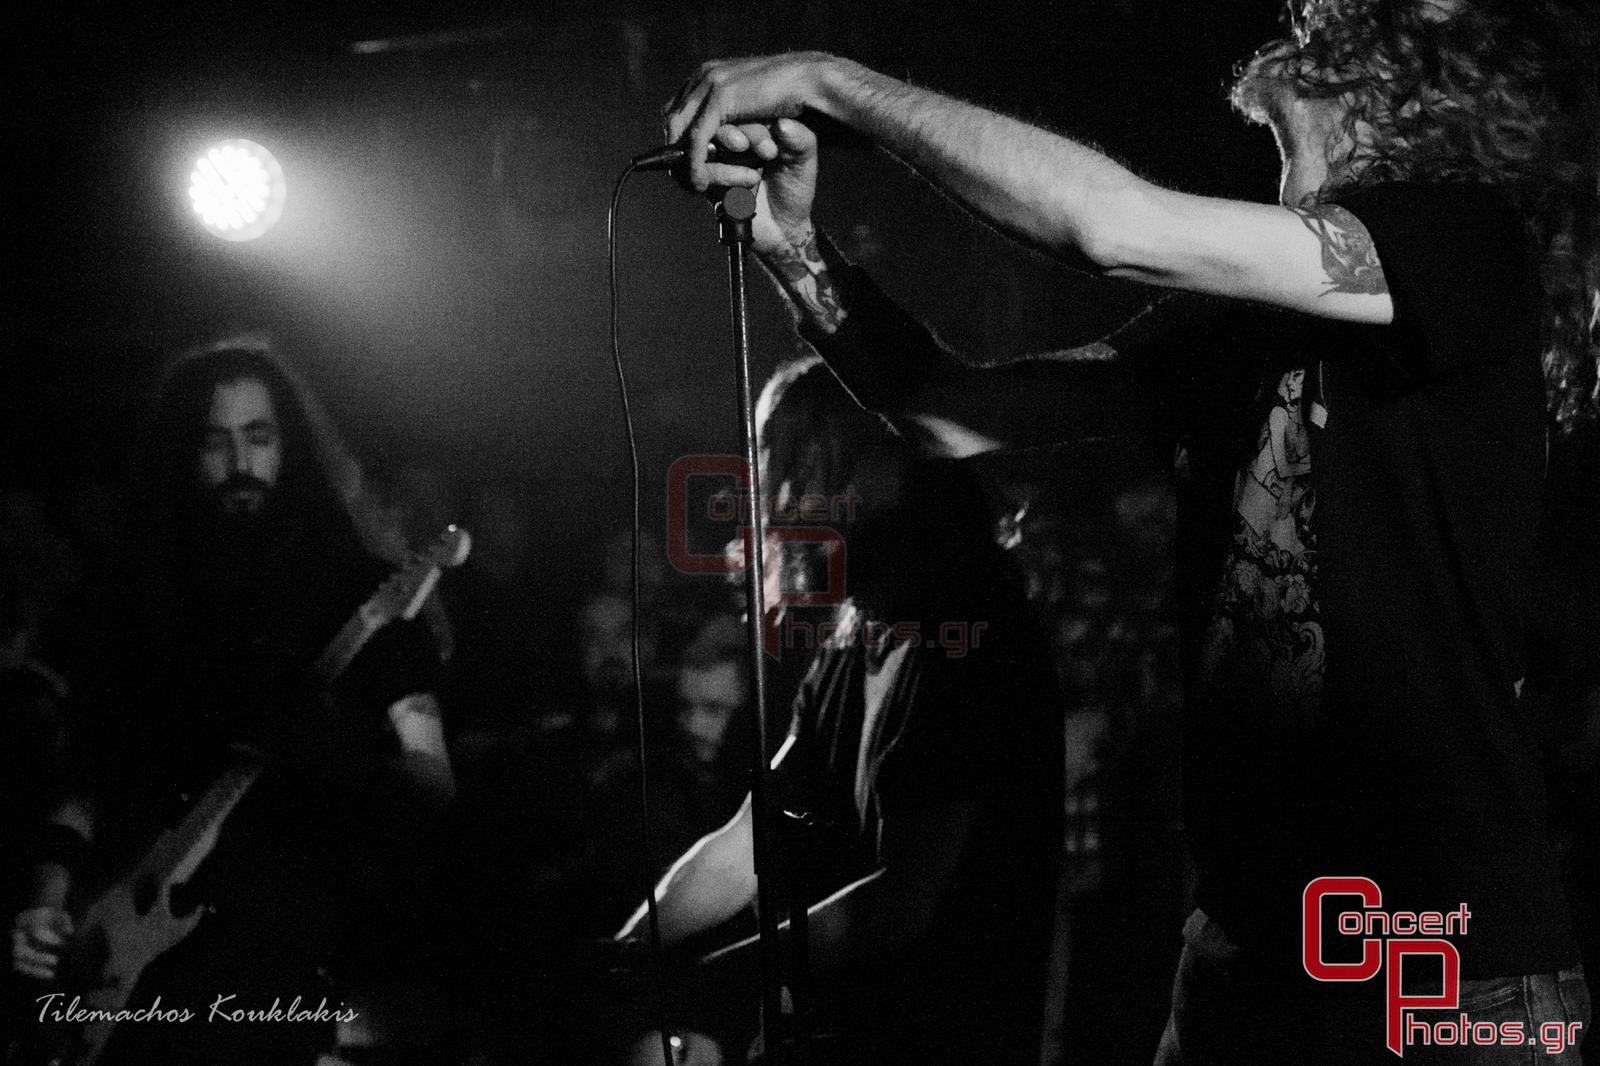 Nightstalker-Nightstalker AN Club photographer:  - concertphotos_-49